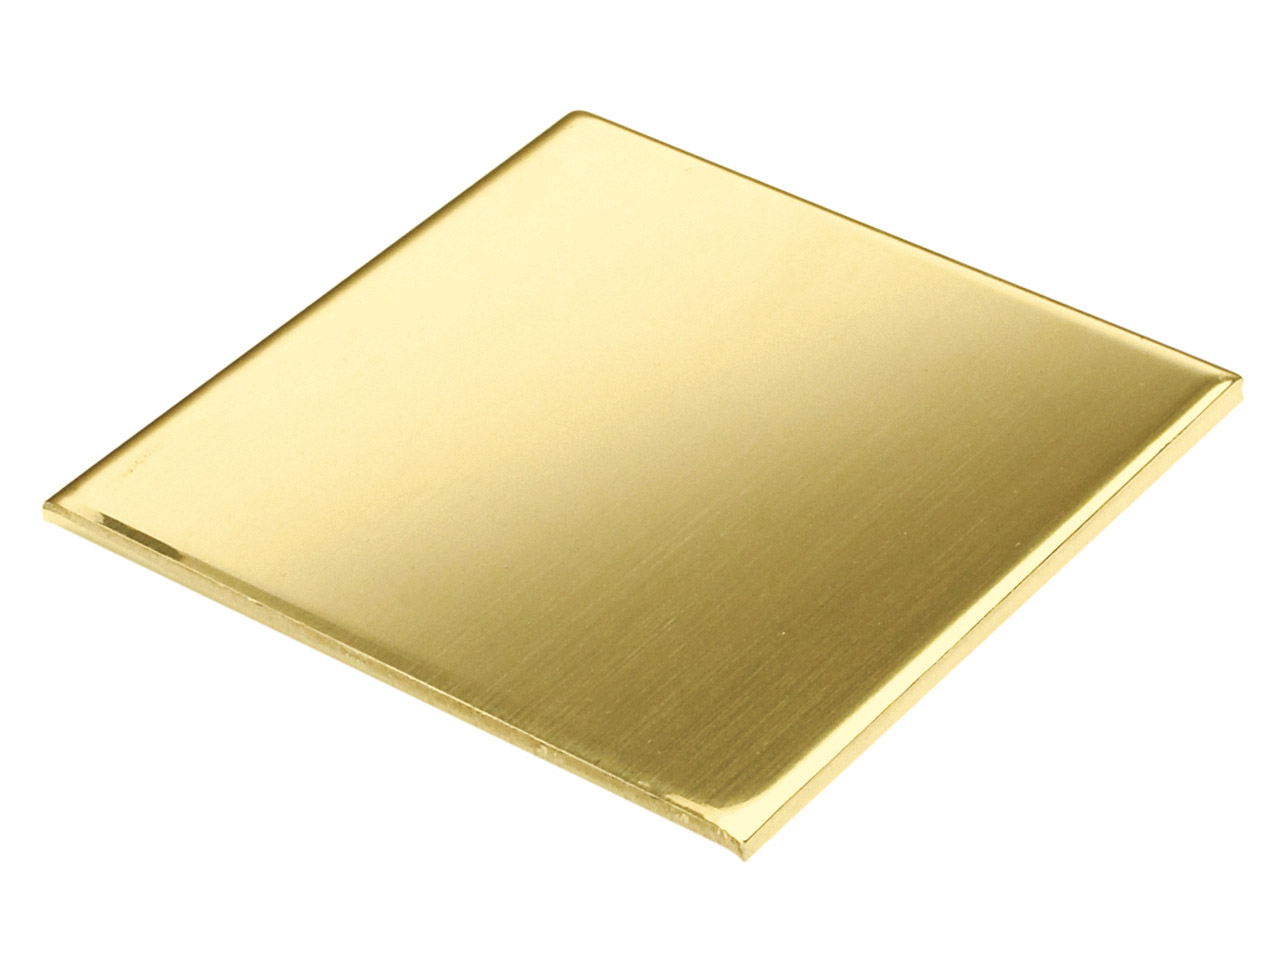 22ct Ds Yellow Gold Sheet 2.00mm